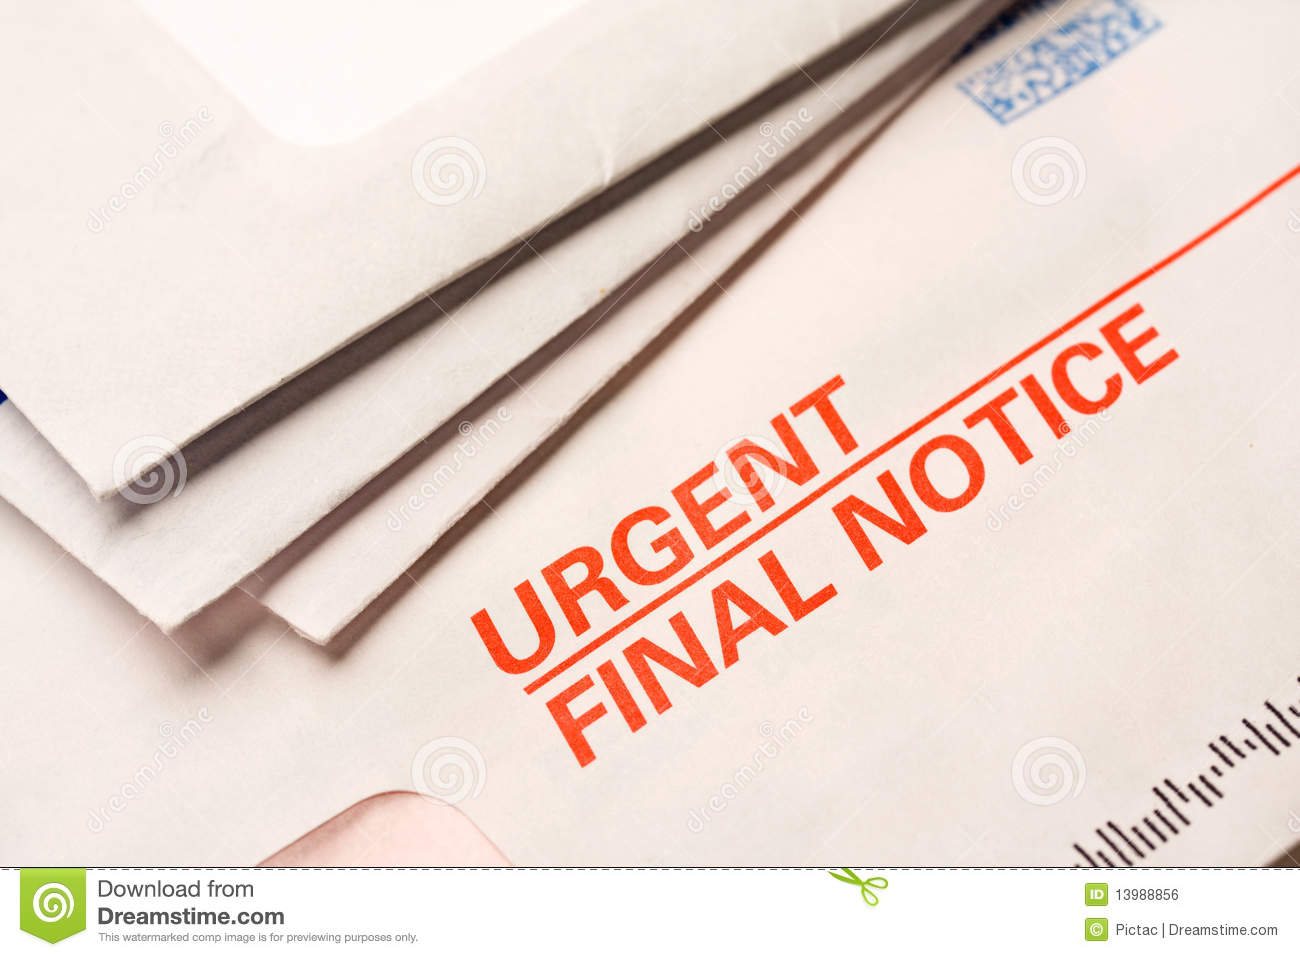 Final notice stock photo. Image of letter, foreclosure - 13988856